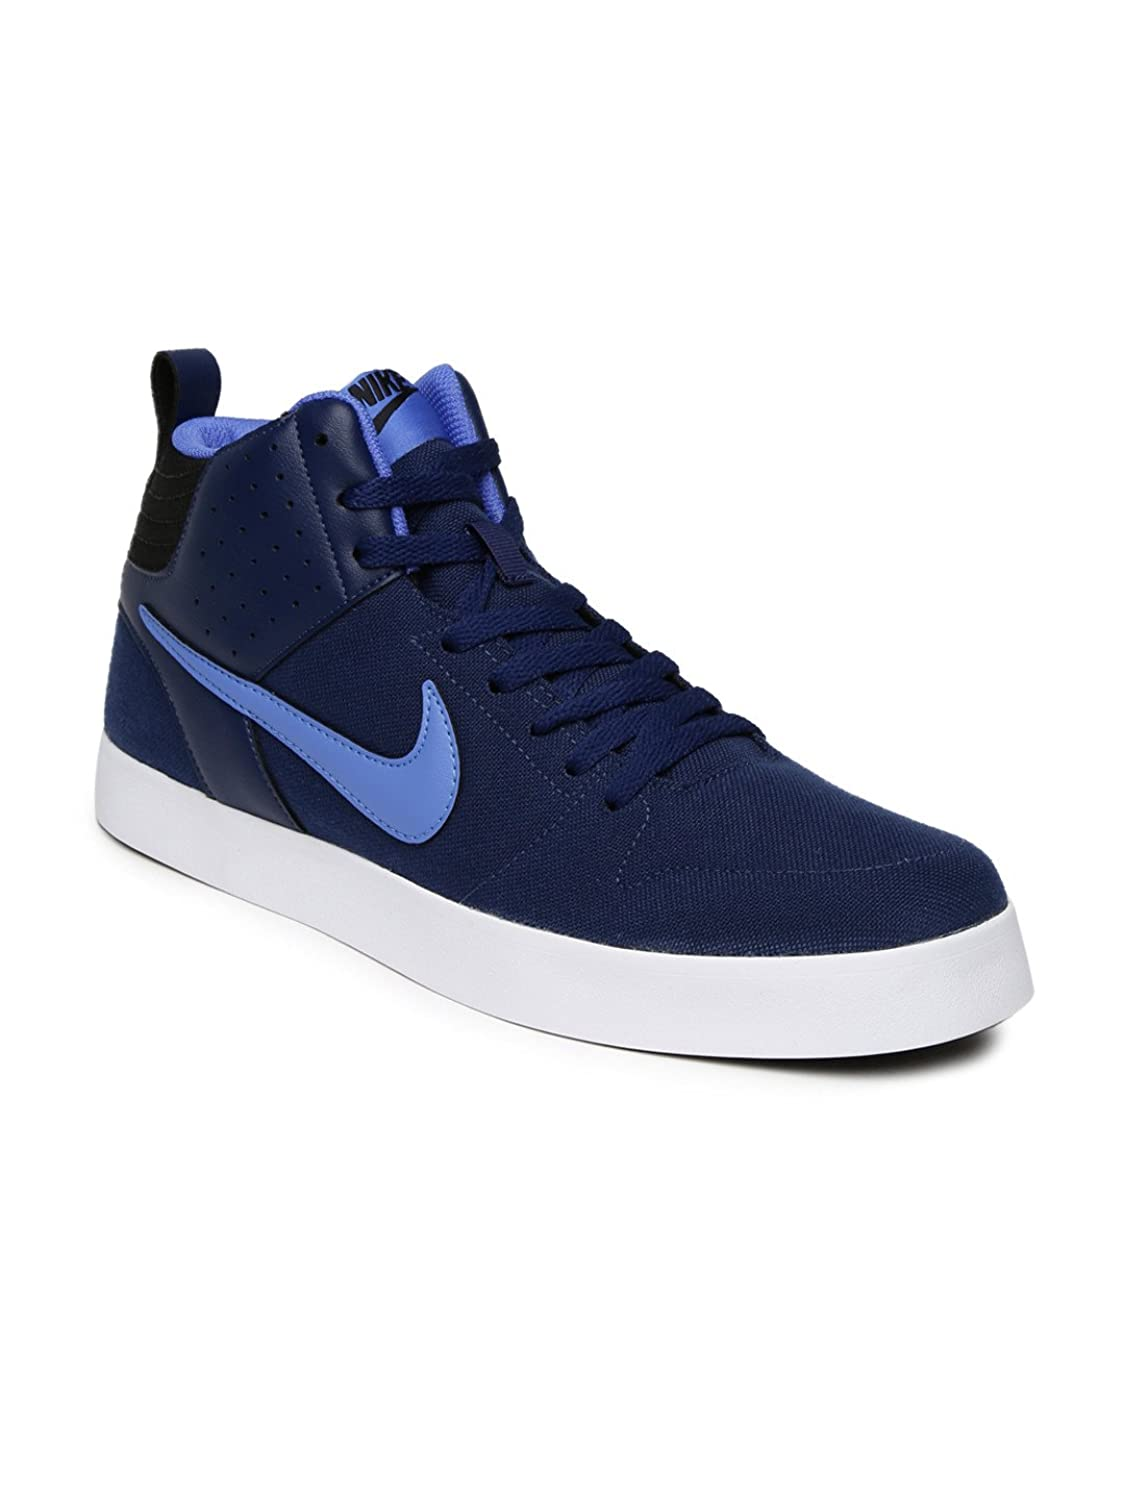 Nike Shoes  Buy Nike Shoes For Men   Women online at best prices in ... 53b8e3a8bcf24